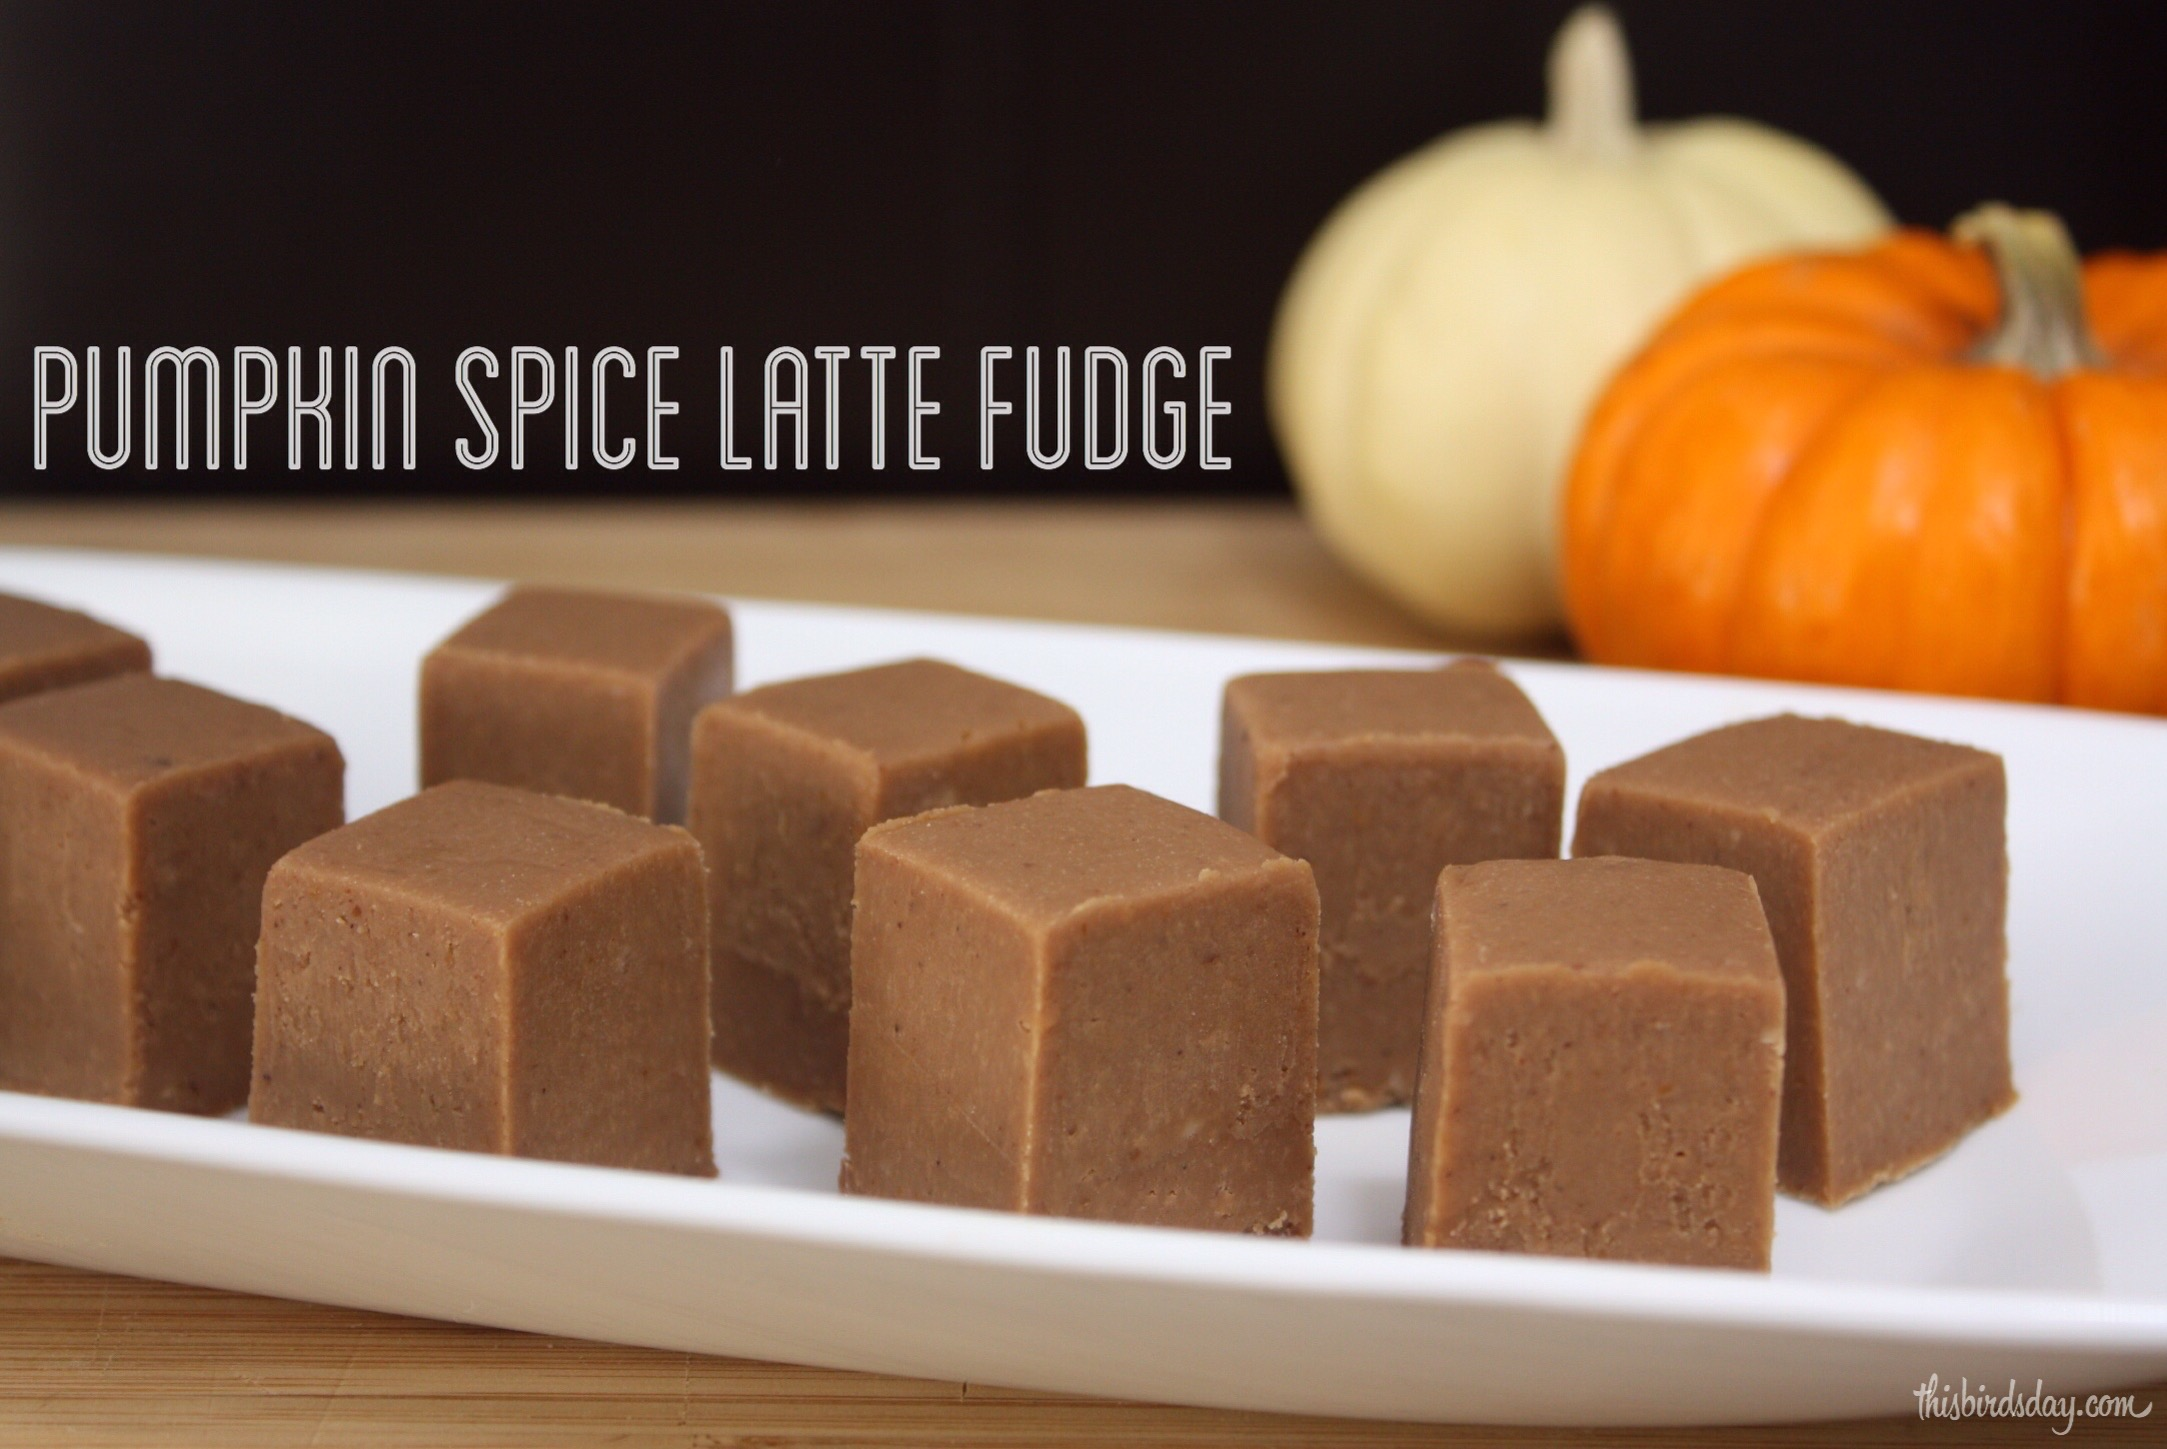 Pumpkin Spice Latte Fudge Recipe